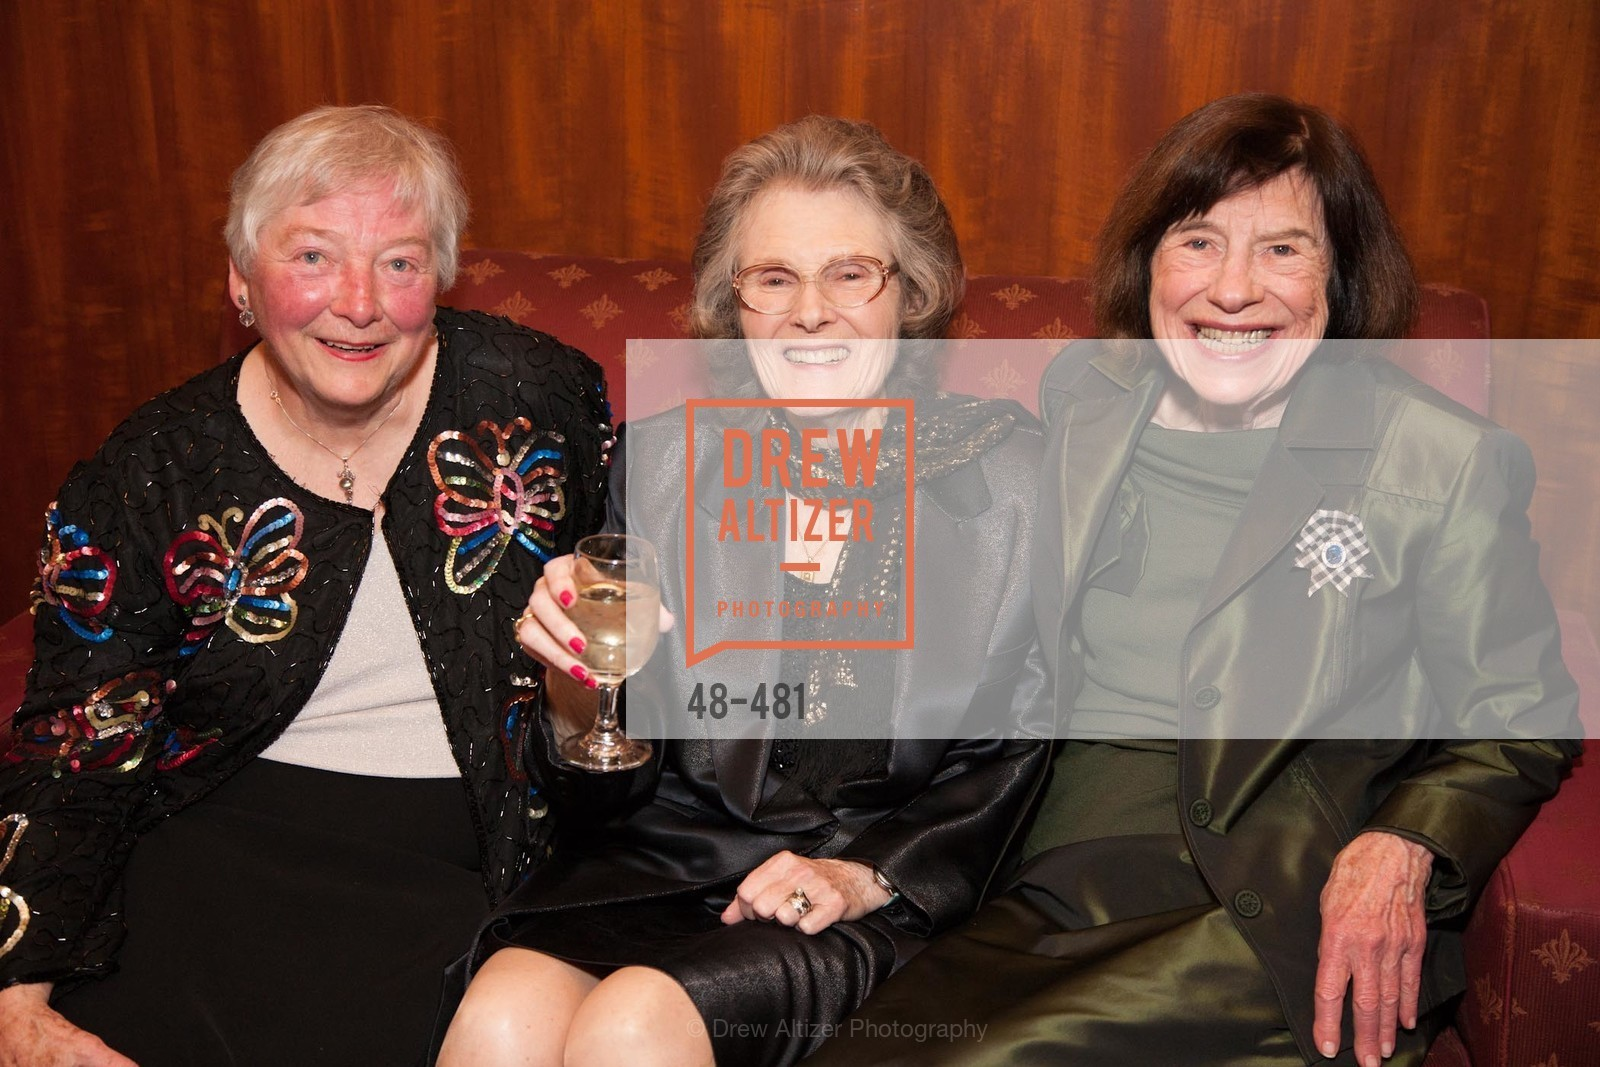 Nancy Anderson, Margaret McKenzie, Marilyn Presten, ST. ANDREW'S SOCIETY OF SAN FRANCISCO'S Traditional Burns Night Supper 2014, US. US, January 25th, 2014,Drew Altizer, Drew Altizer Photography, full-service agency, private events, San Francisco photographer, photographer california